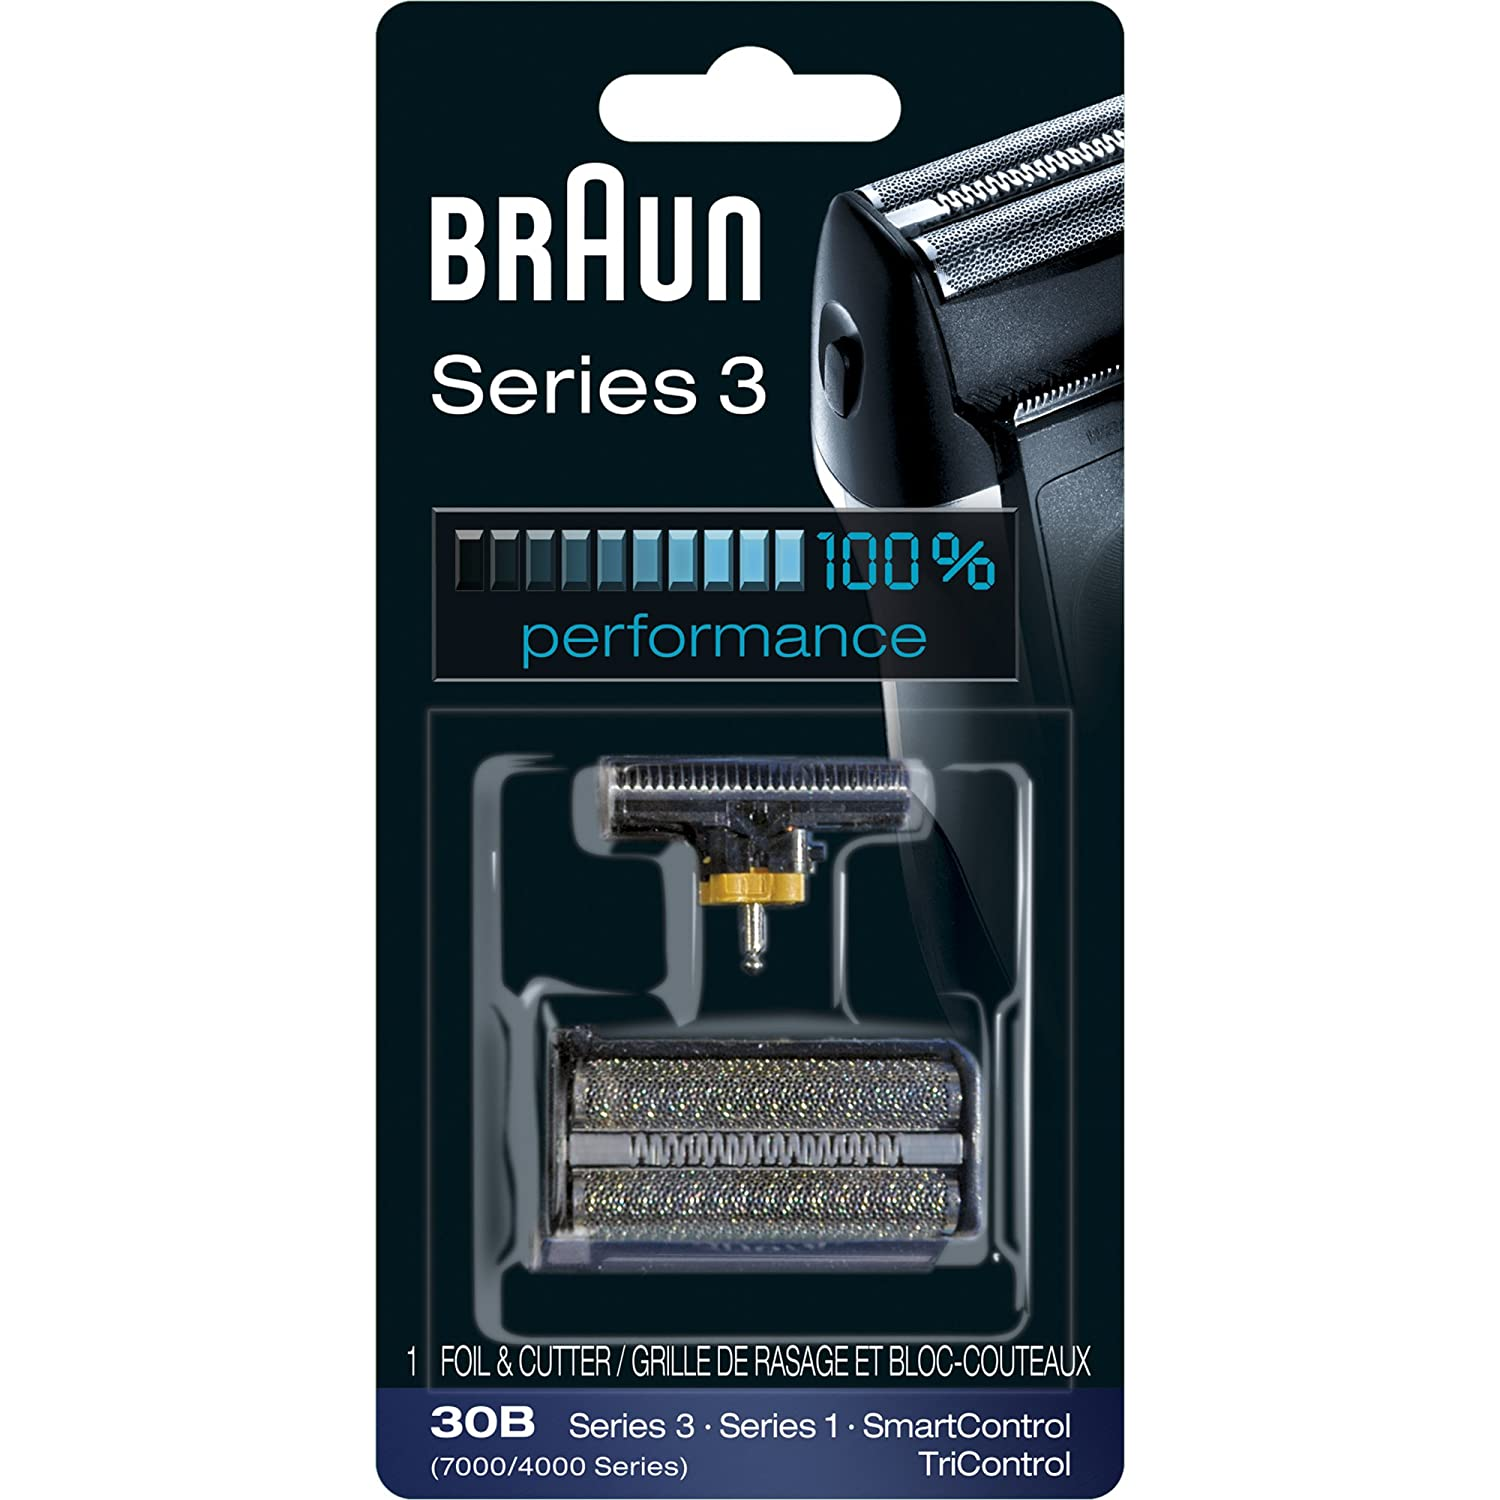 Braun Series 3 30B Foil & Cutter Replacement Head,Compatible with Previous Generation SmartControl, TriControl, 7000/4000 shavers, and Series 3 (340s)